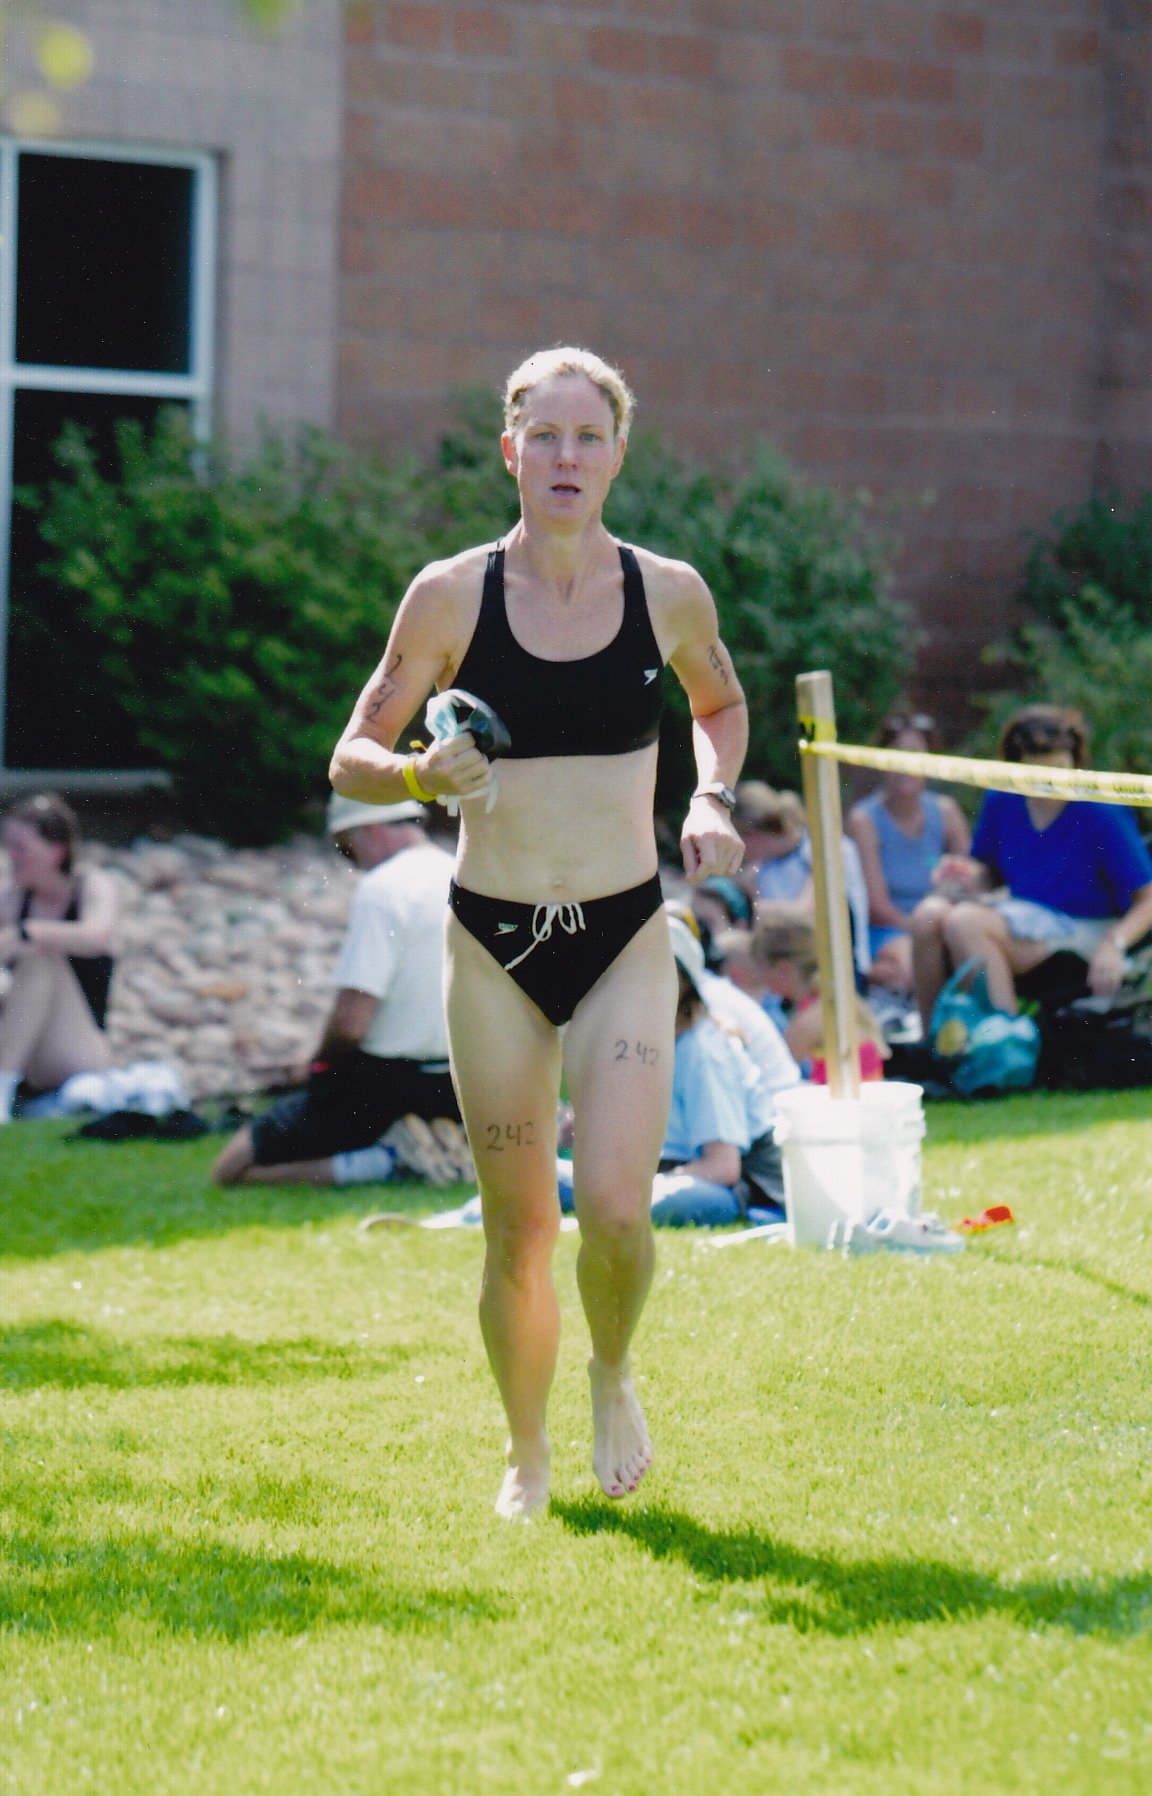 Triathlon in Denver 2002 - transition from swim to bike.